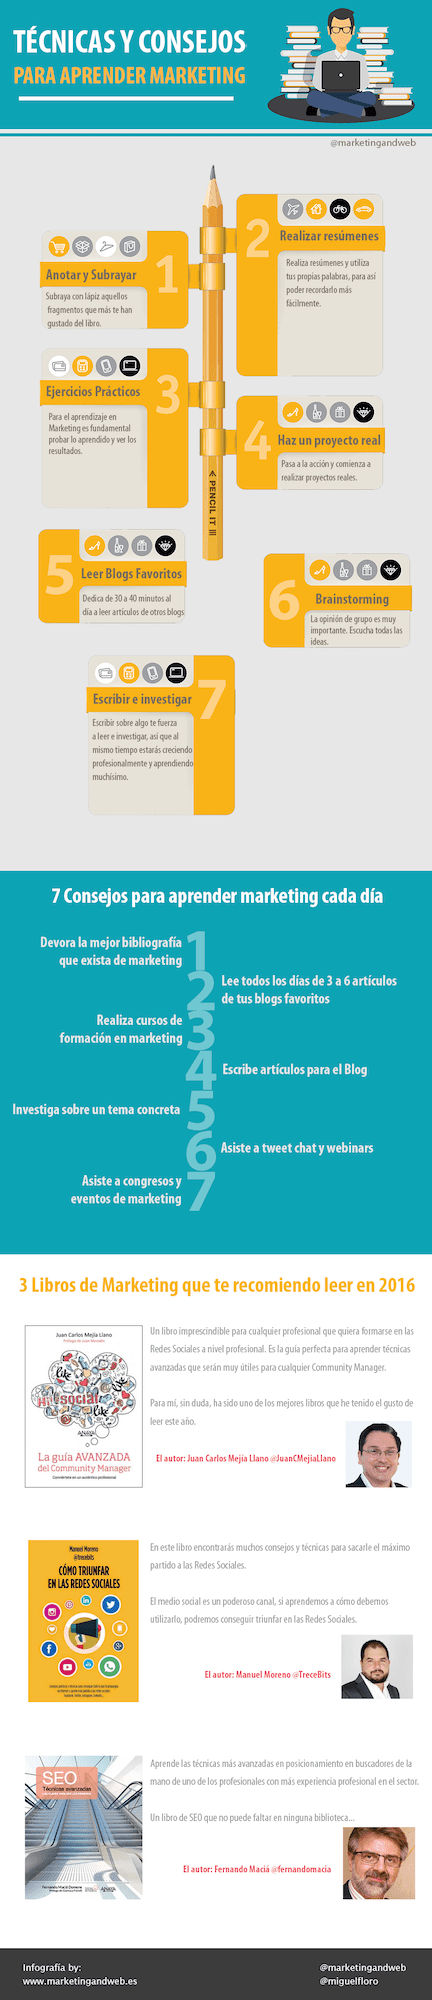 técnicas de estudio aprender marketing infografia